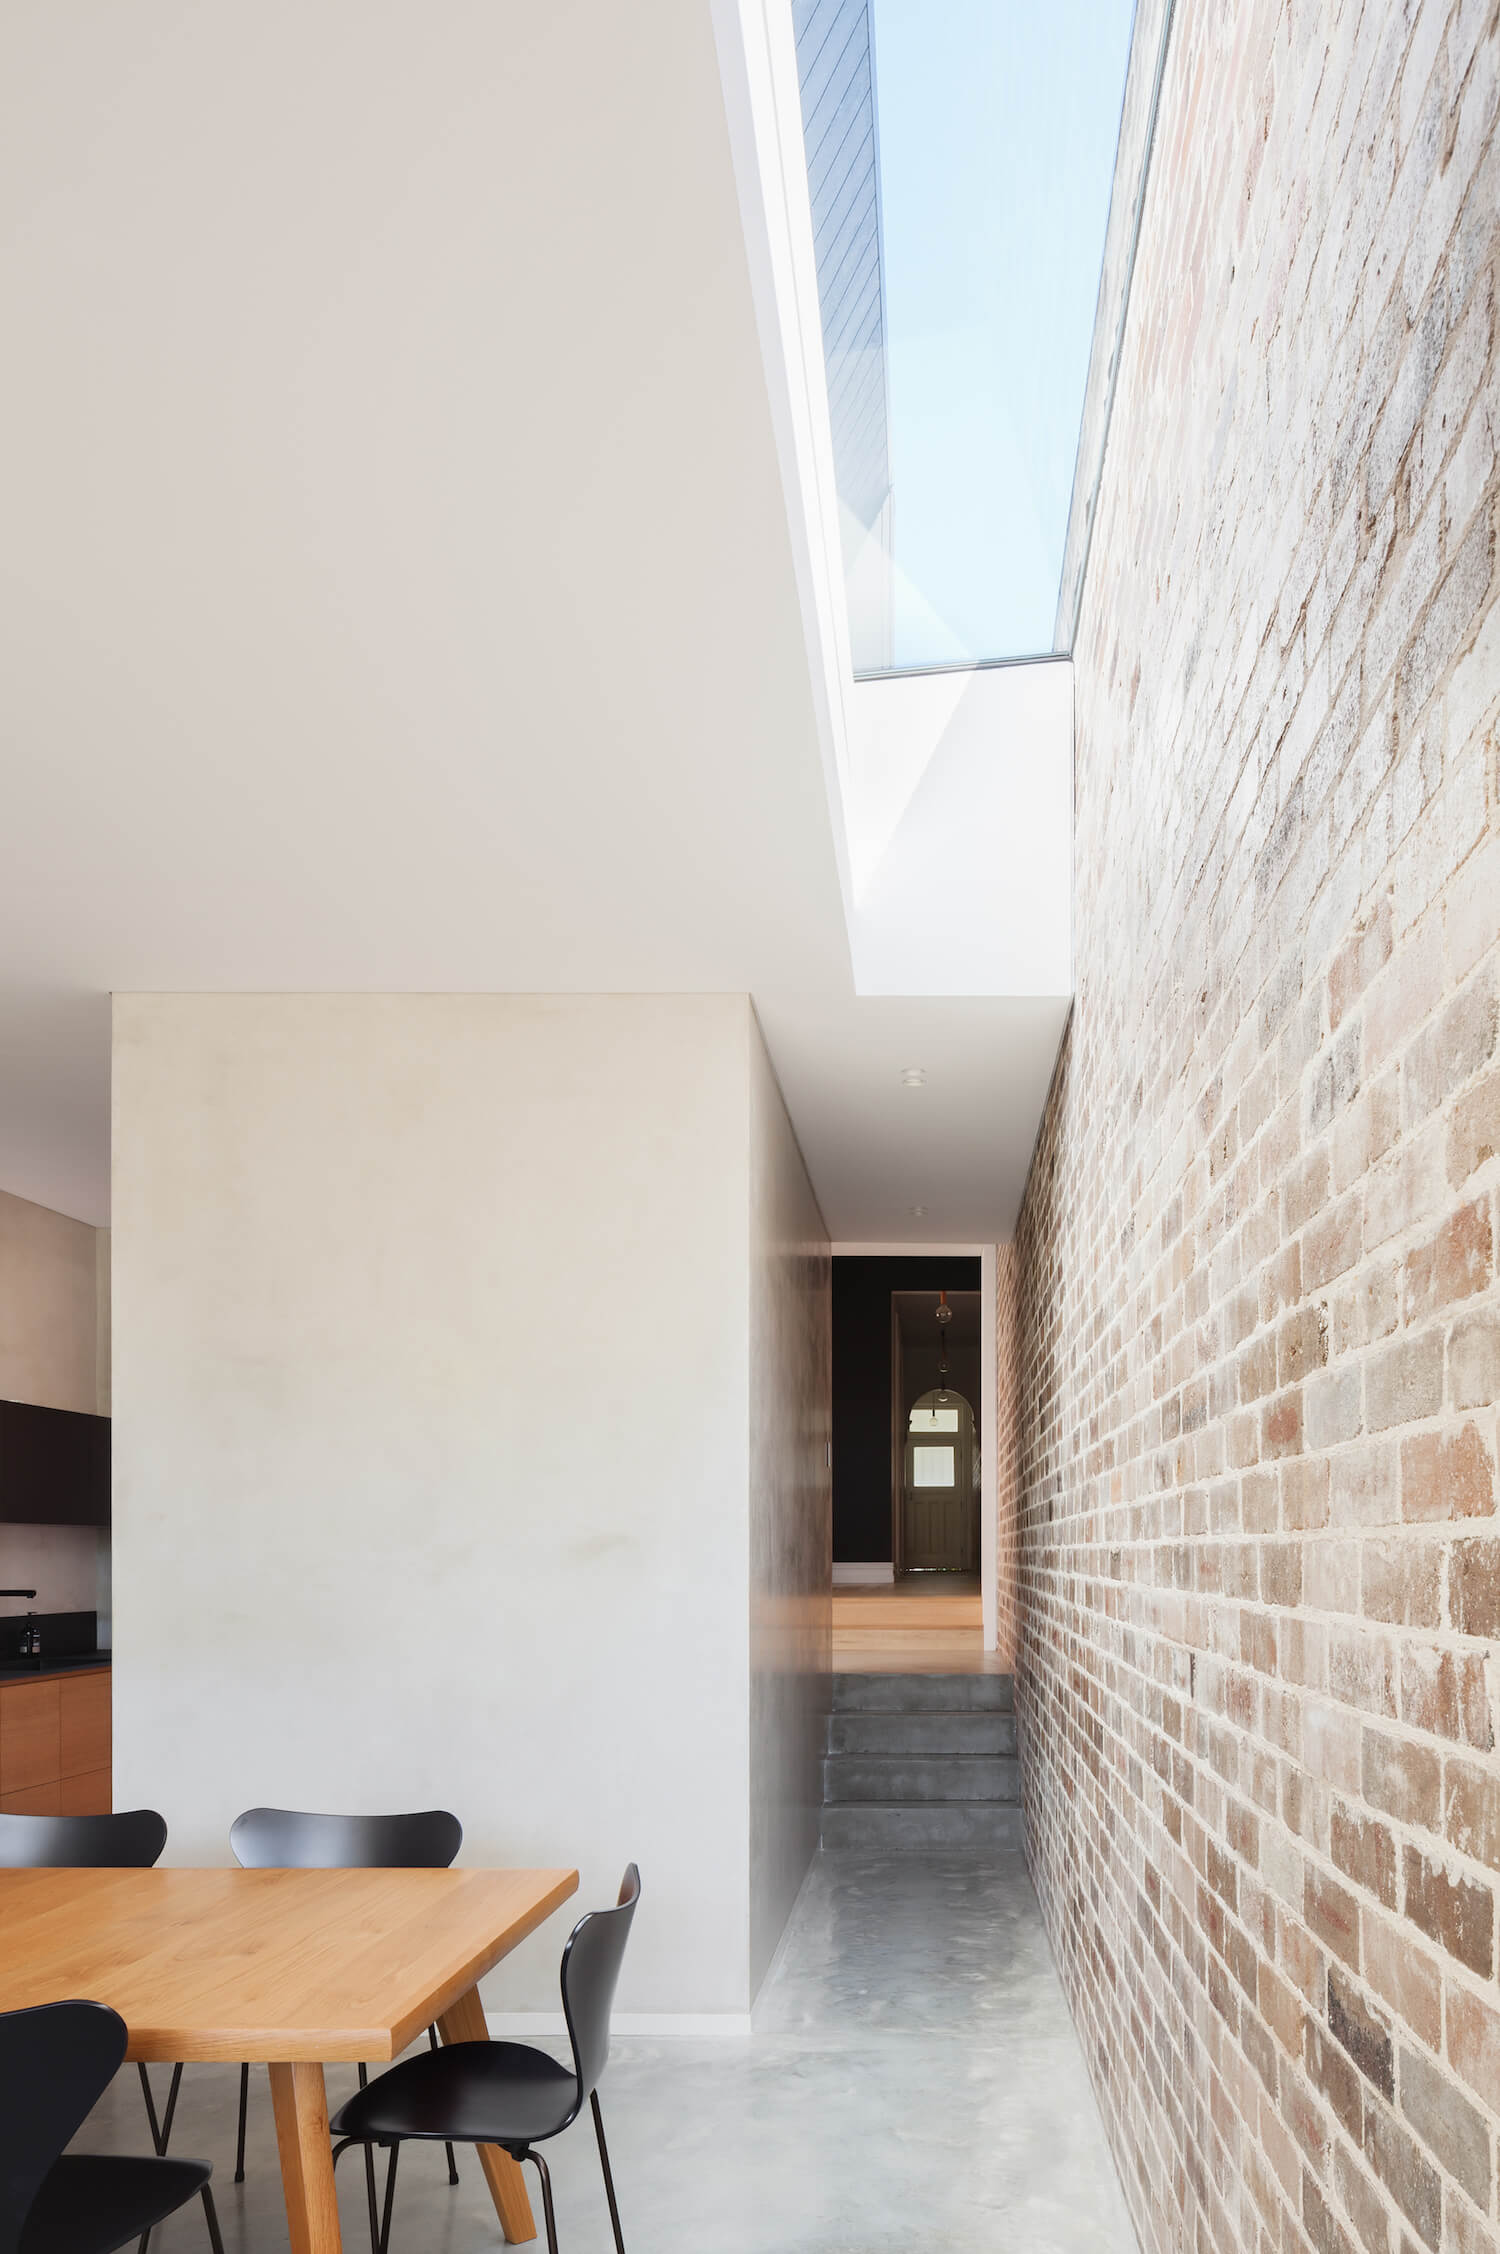 est living interiors d house marston architects 4 1